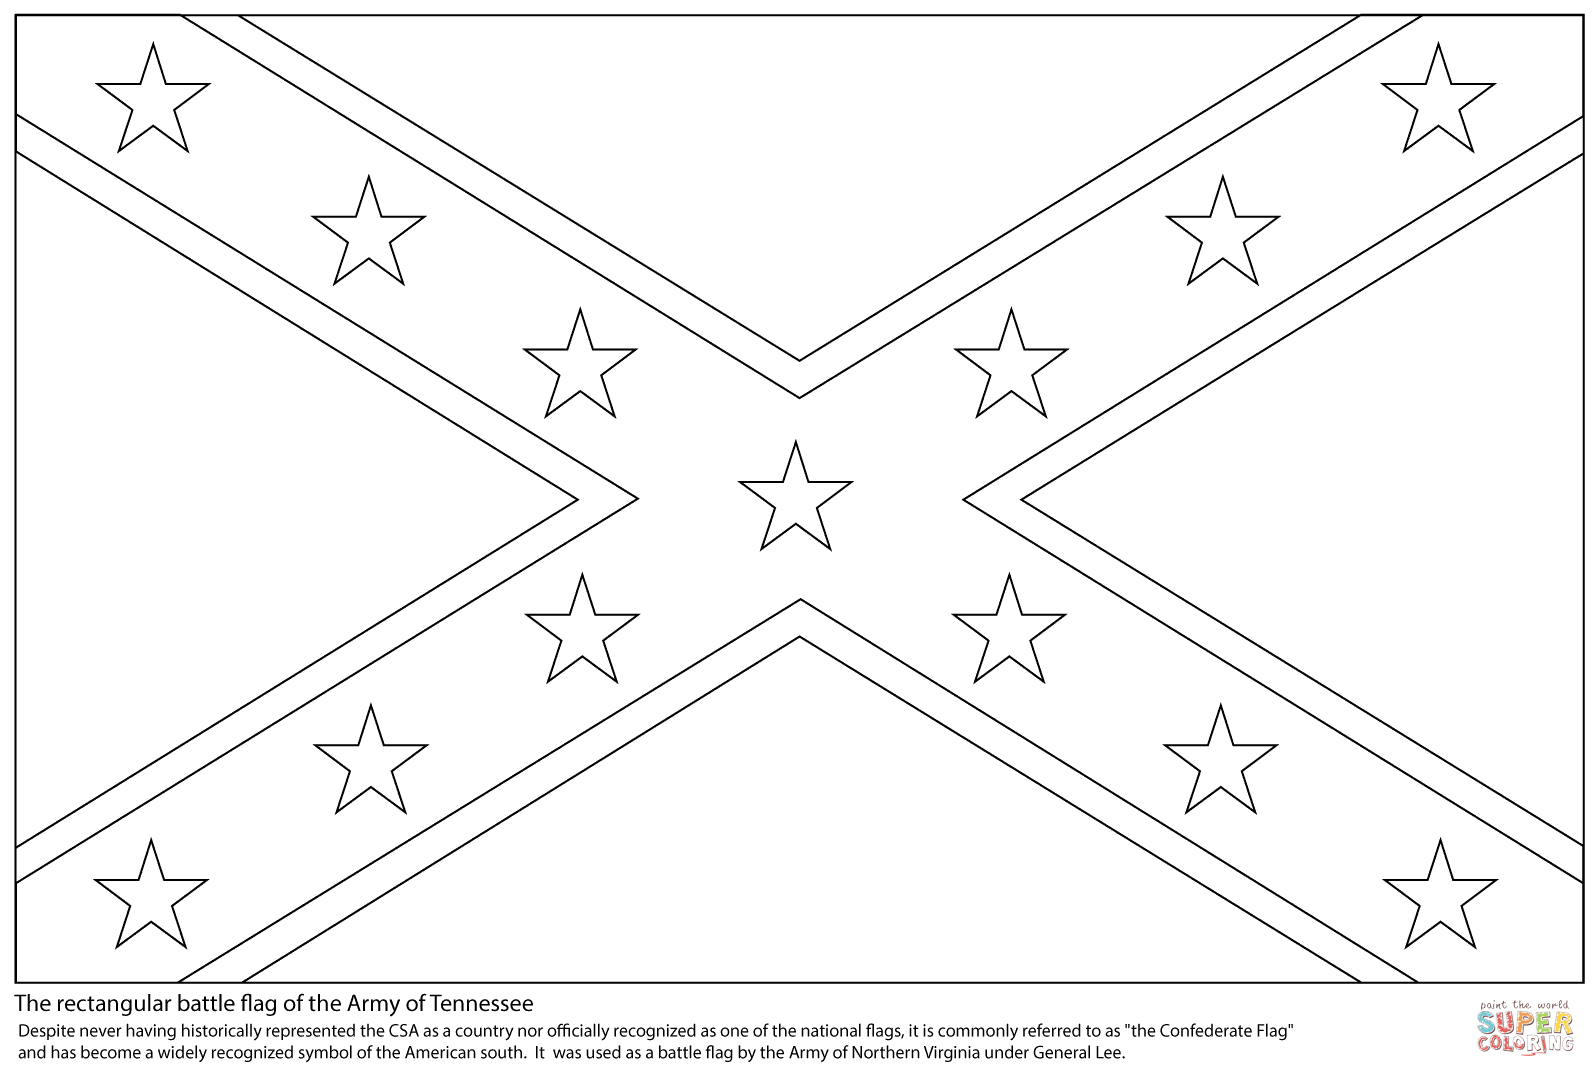 rebel flag coloring page battle flag of the confederate states of america coloring flag coloring rebel page